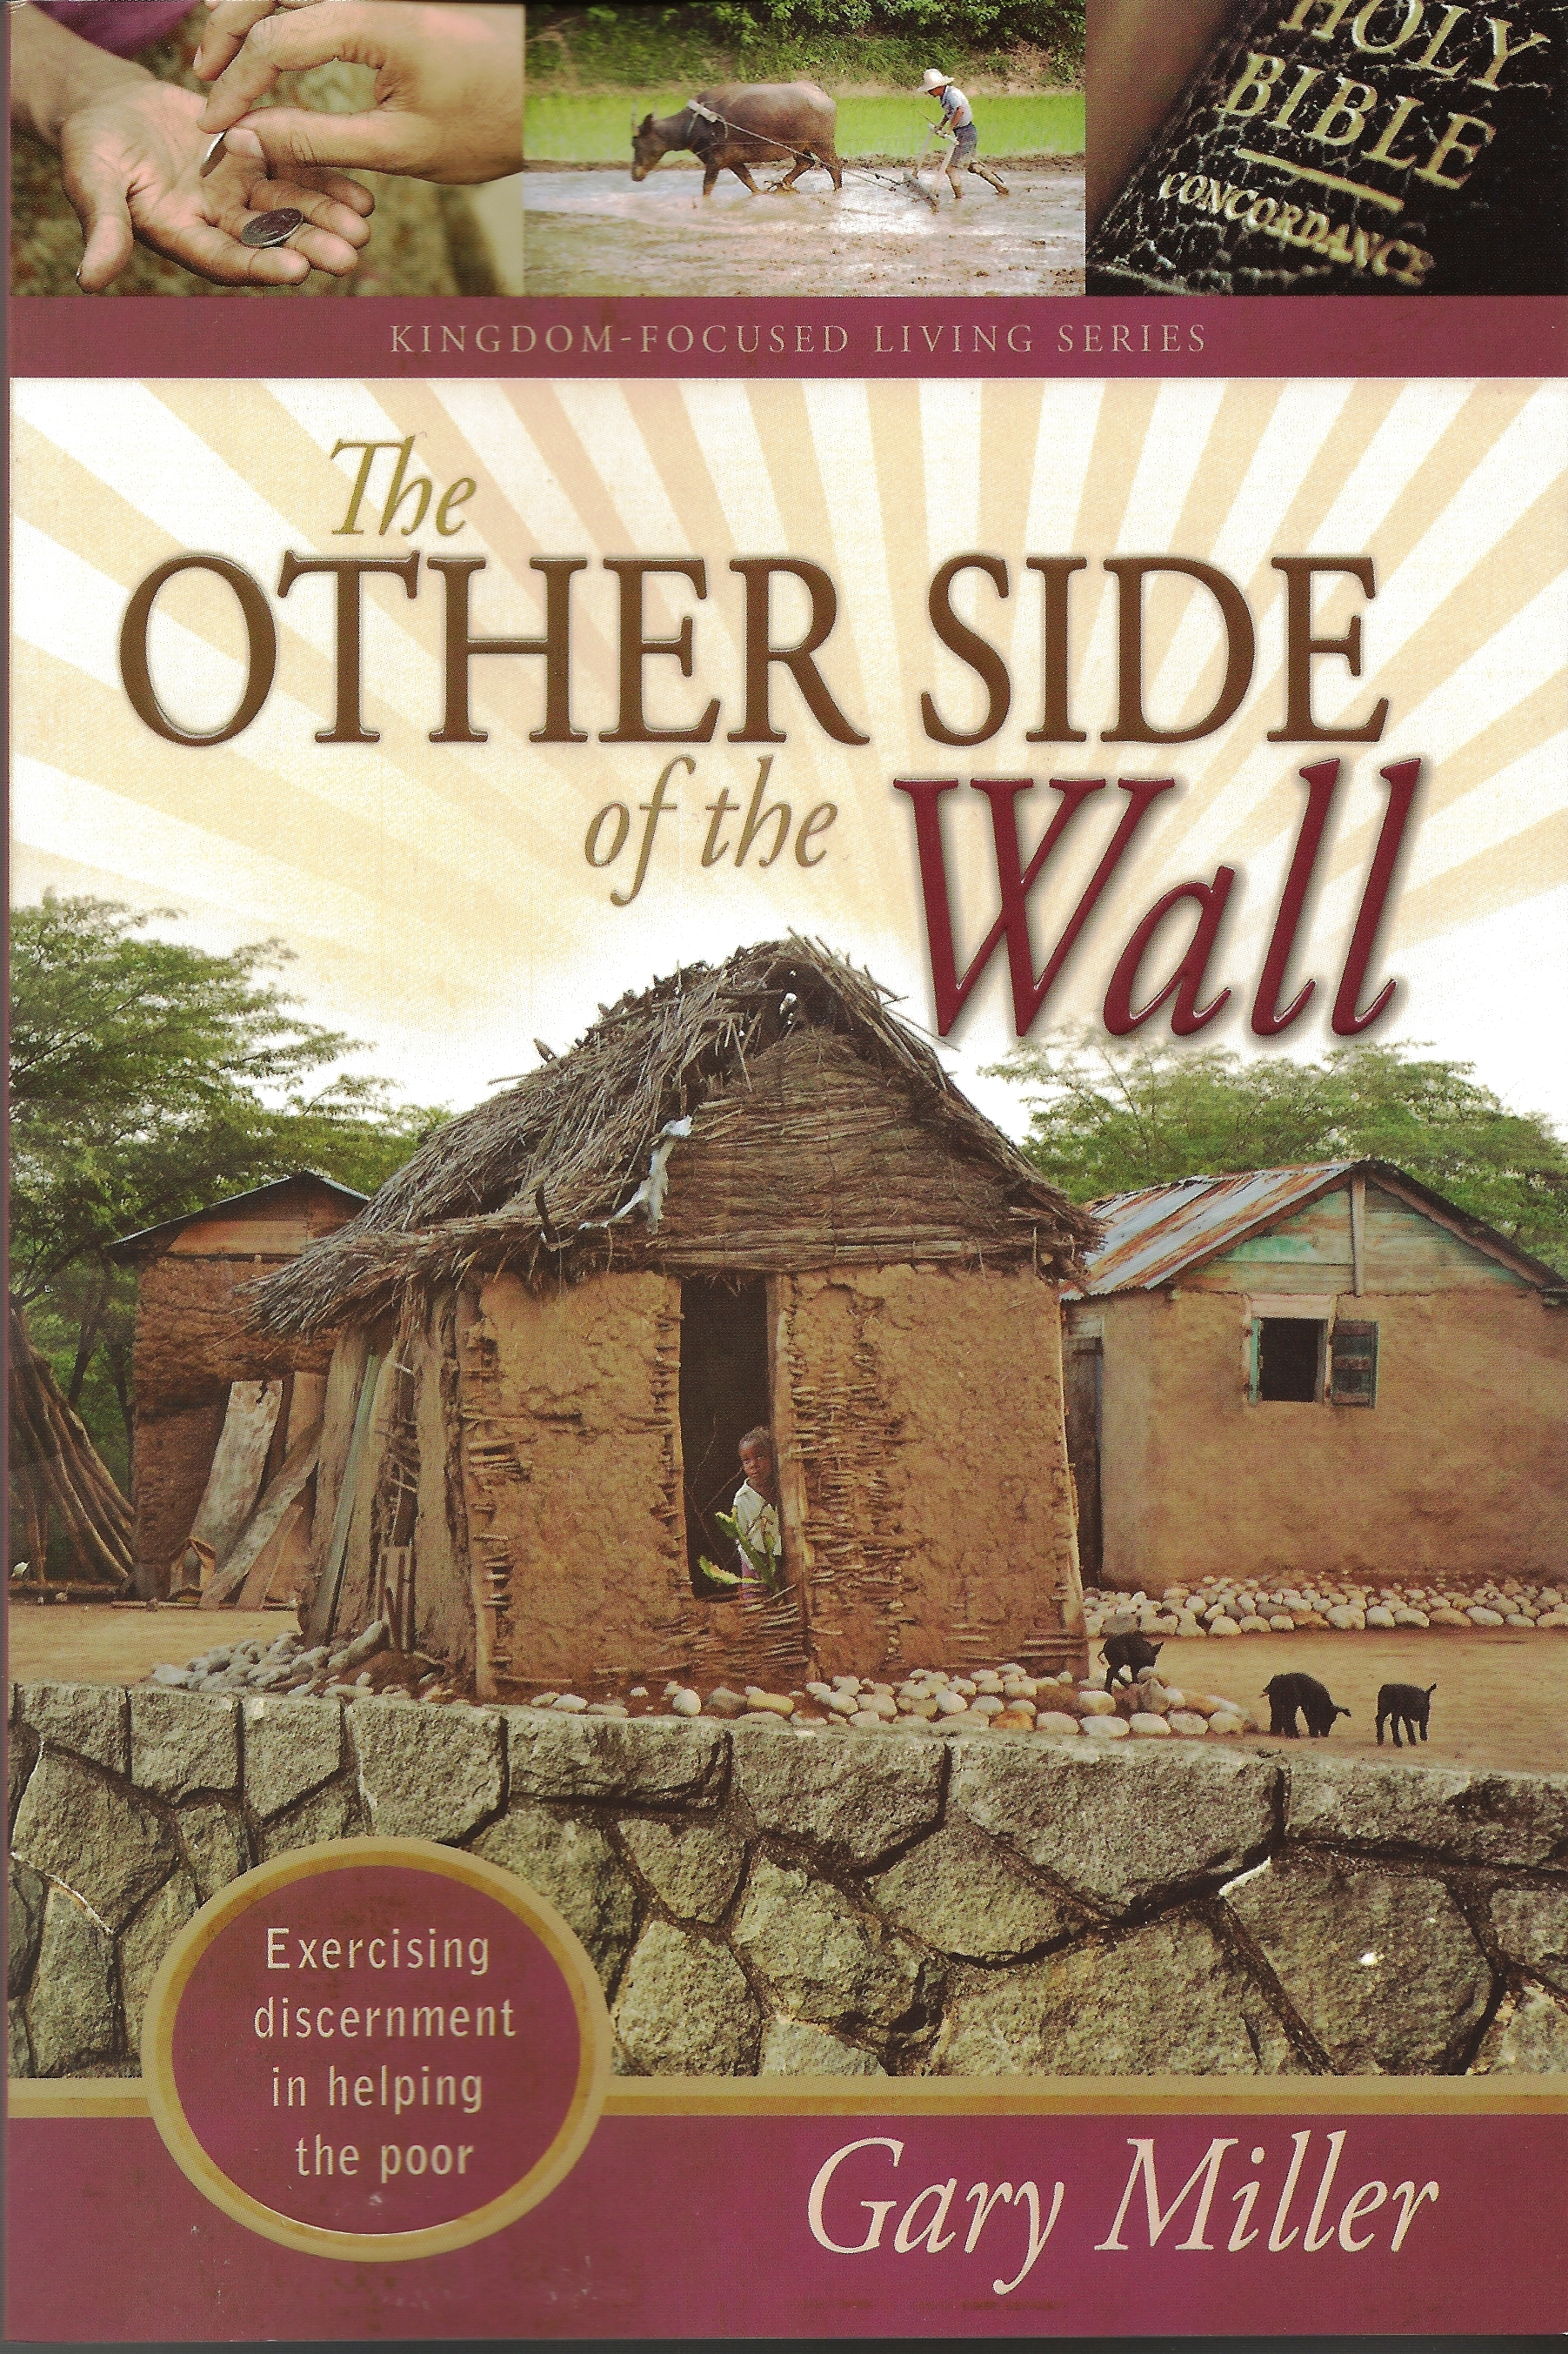 THE OTHER SIDE OF THE WALL Gary Miller